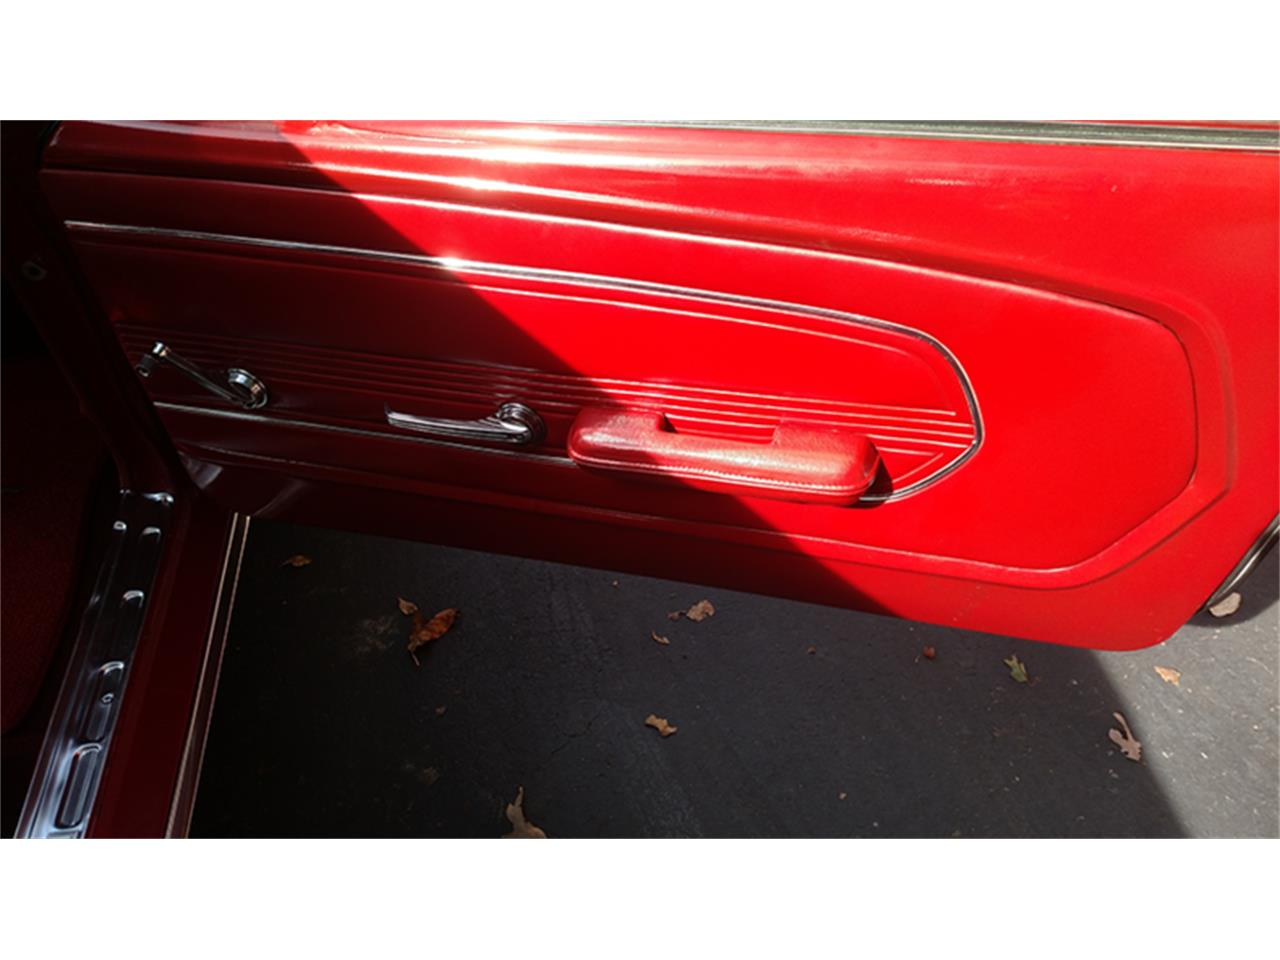 Large Picture of '67 Ford Mustang located in Huntingtown Maryland - $15,900.00 Offered by Old Town Automobile - M763